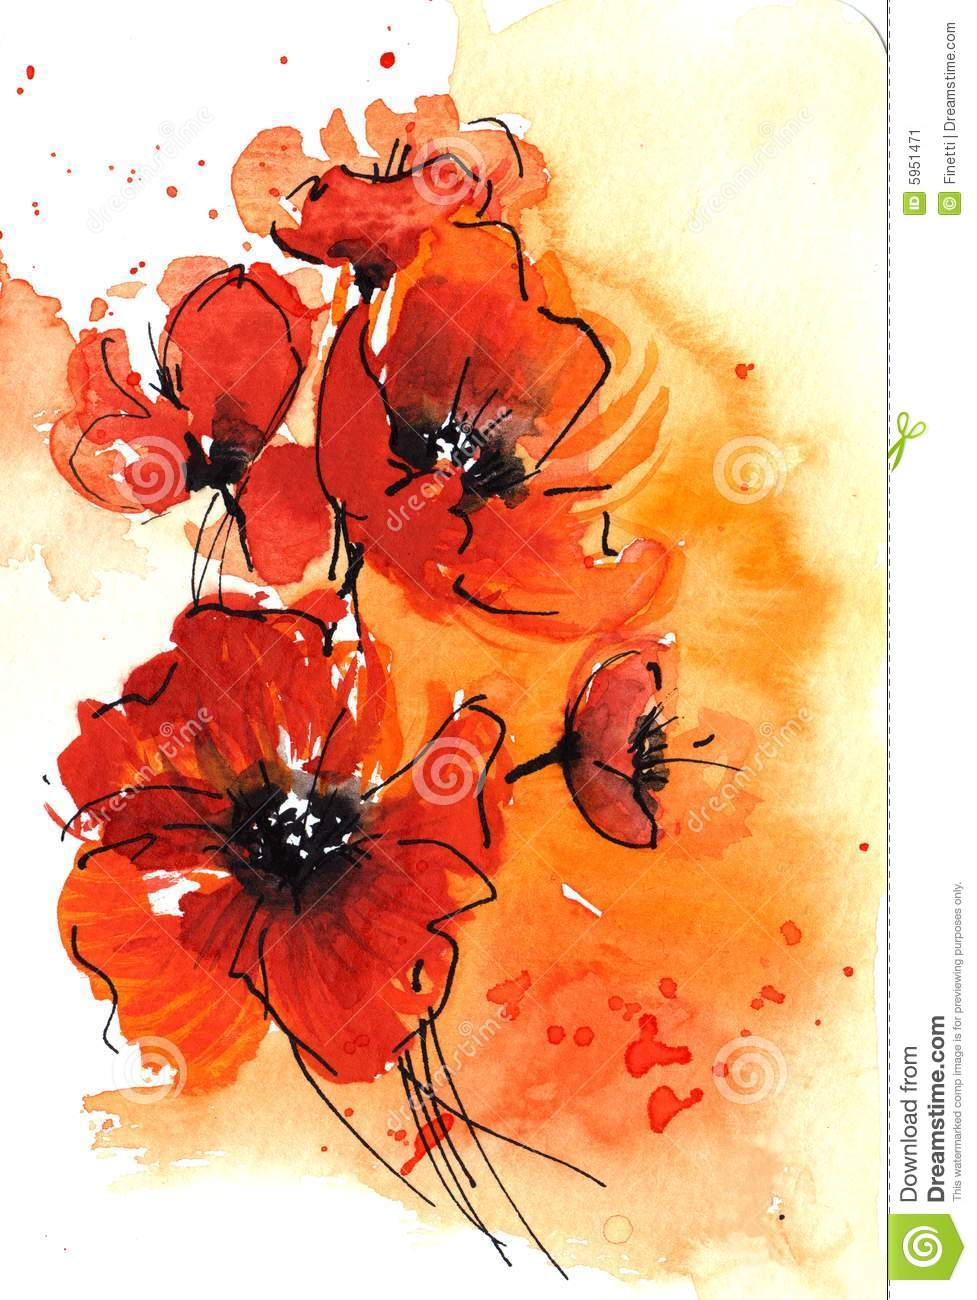 Abstract watercolor poppies stock illustration for Abstract watercolour flowers